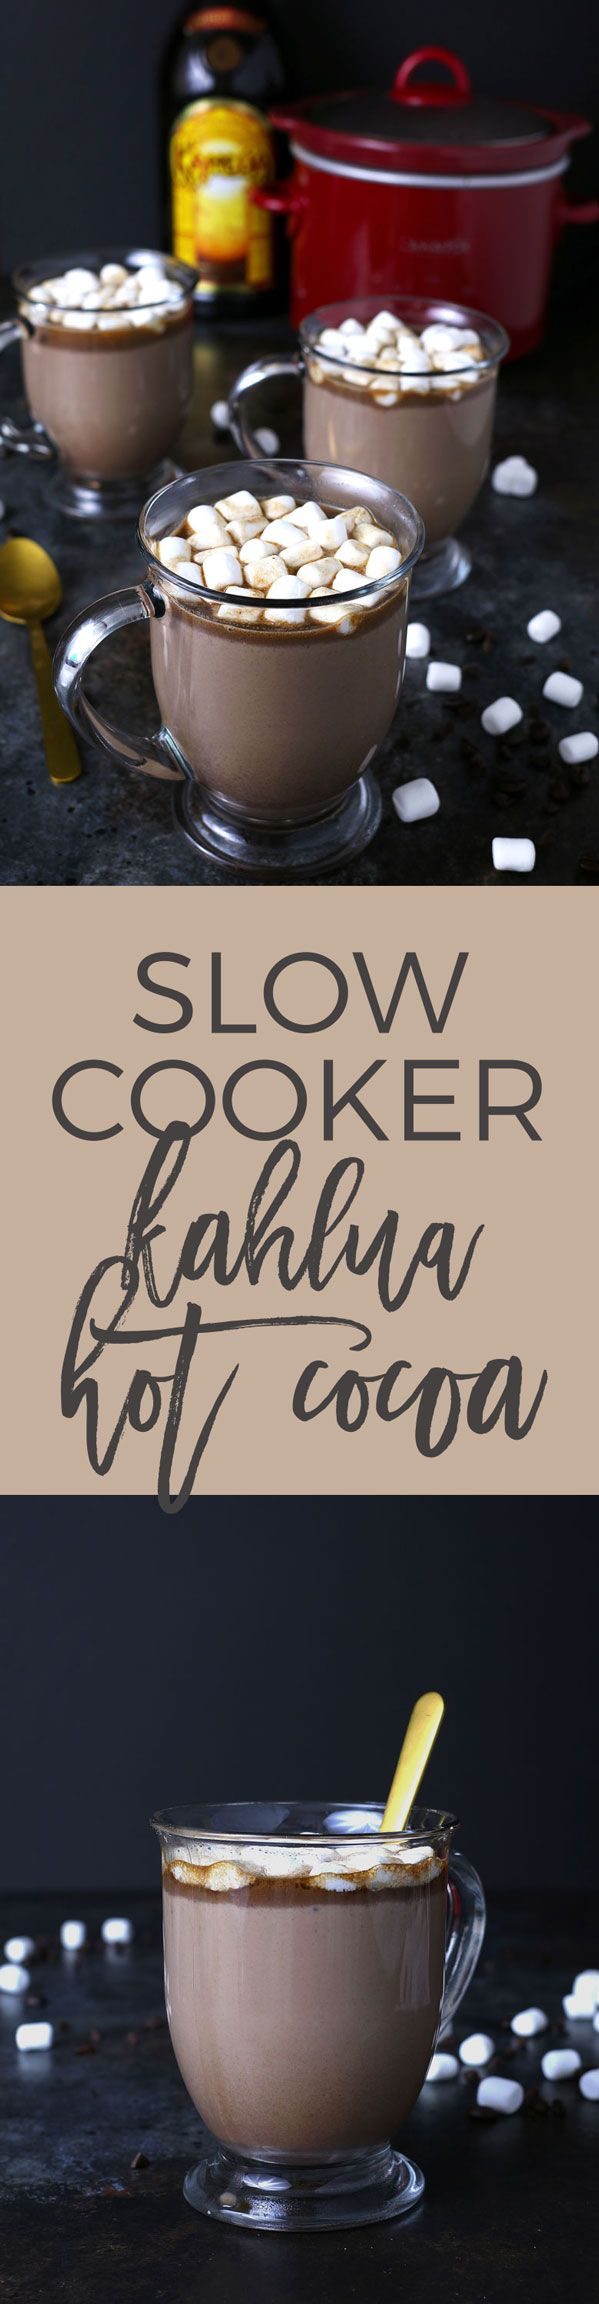 Slow cooker Kahlua hot cocoa warms you up in more ways than one! Add some marshmallows to this hot chocolate and you're all set for chilly winter nights or holiday parties! This is going to become your favorite winter cocktail / dessert combination! | honeyandbirch.com